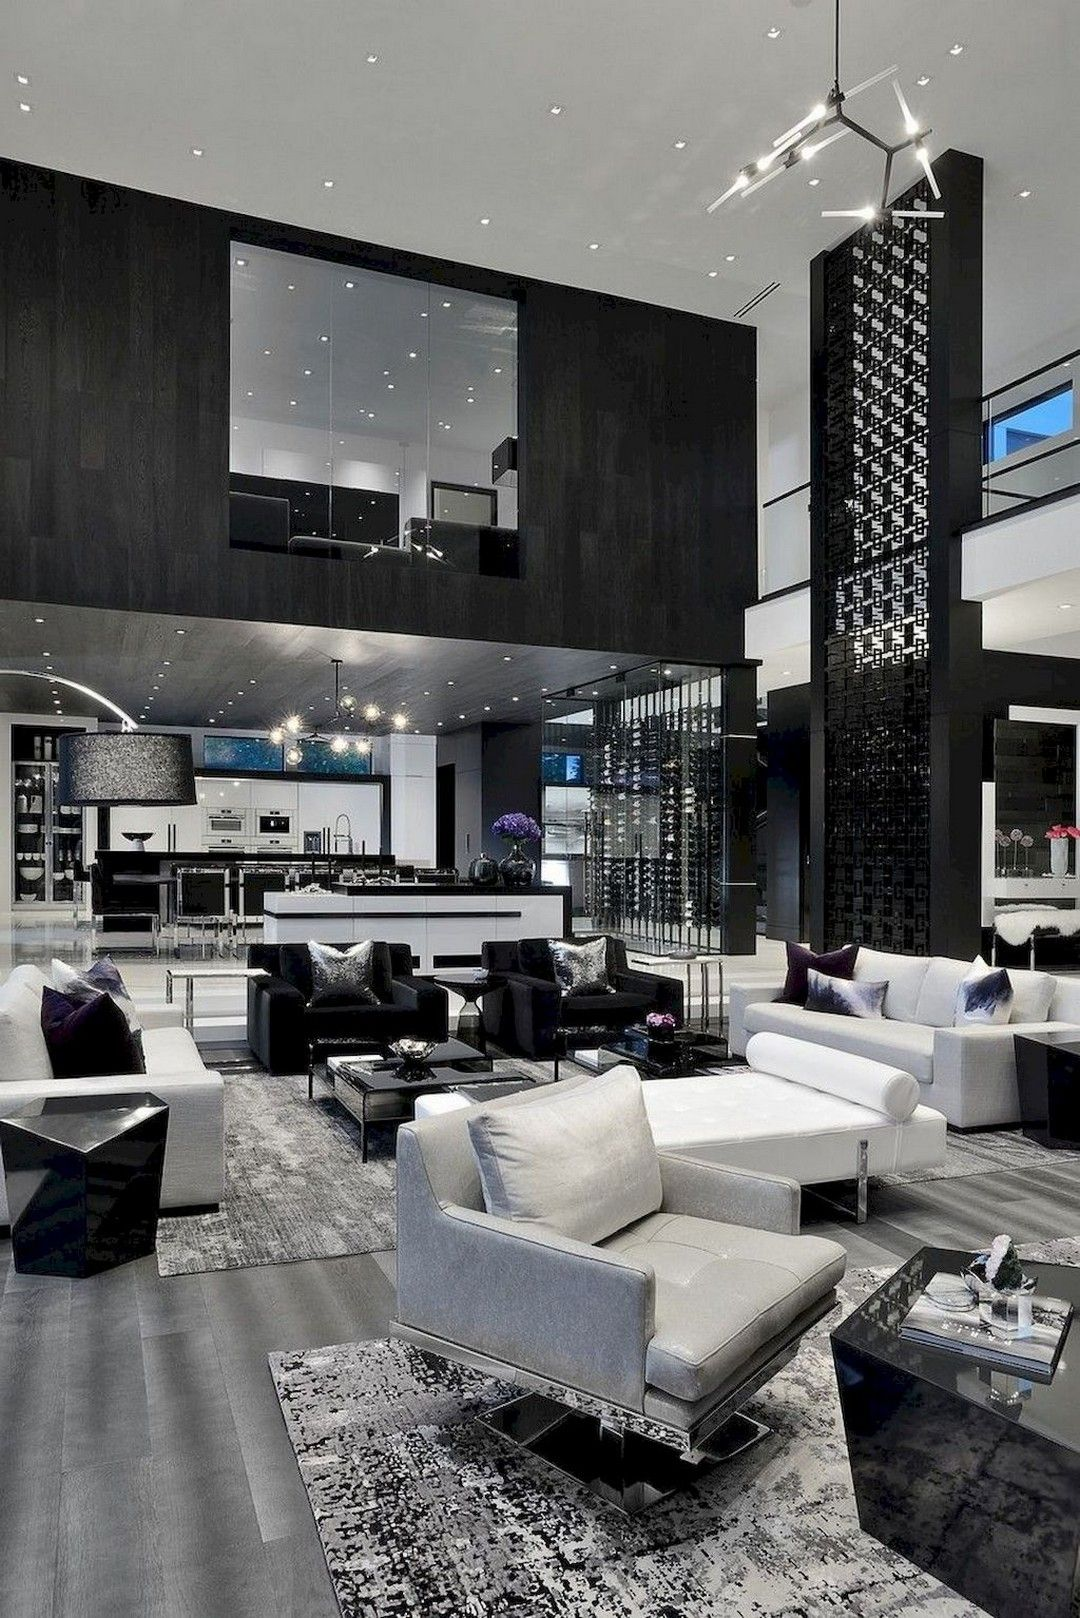 What Do You Think About This Fascinating Home Interior Design?